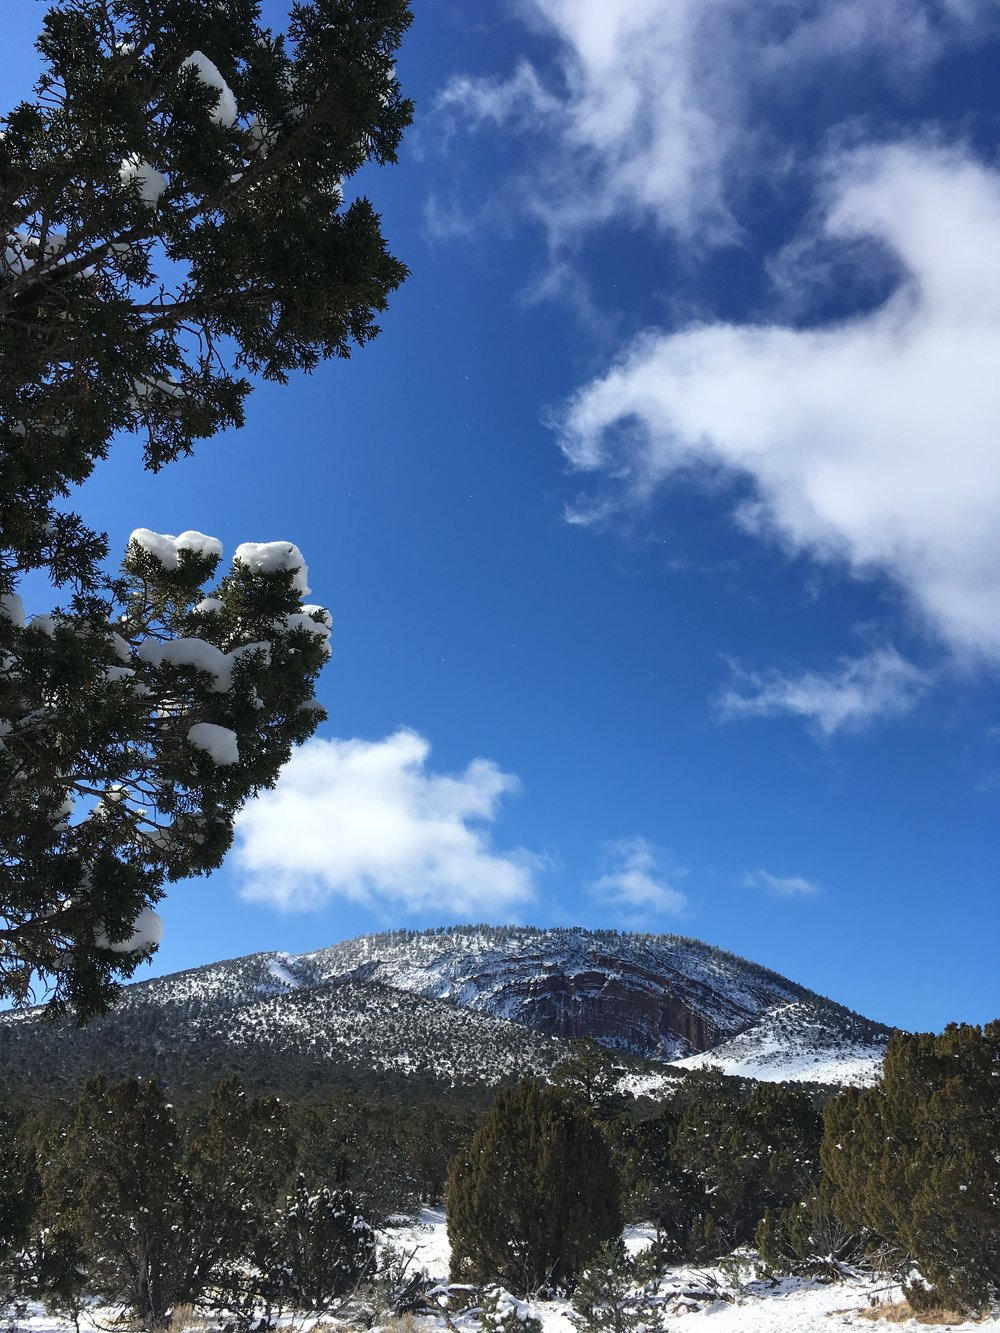 Alt-Text: snowy cinder cone mountain blue sky fluffy white clouds in background, piñon trees in foreground.